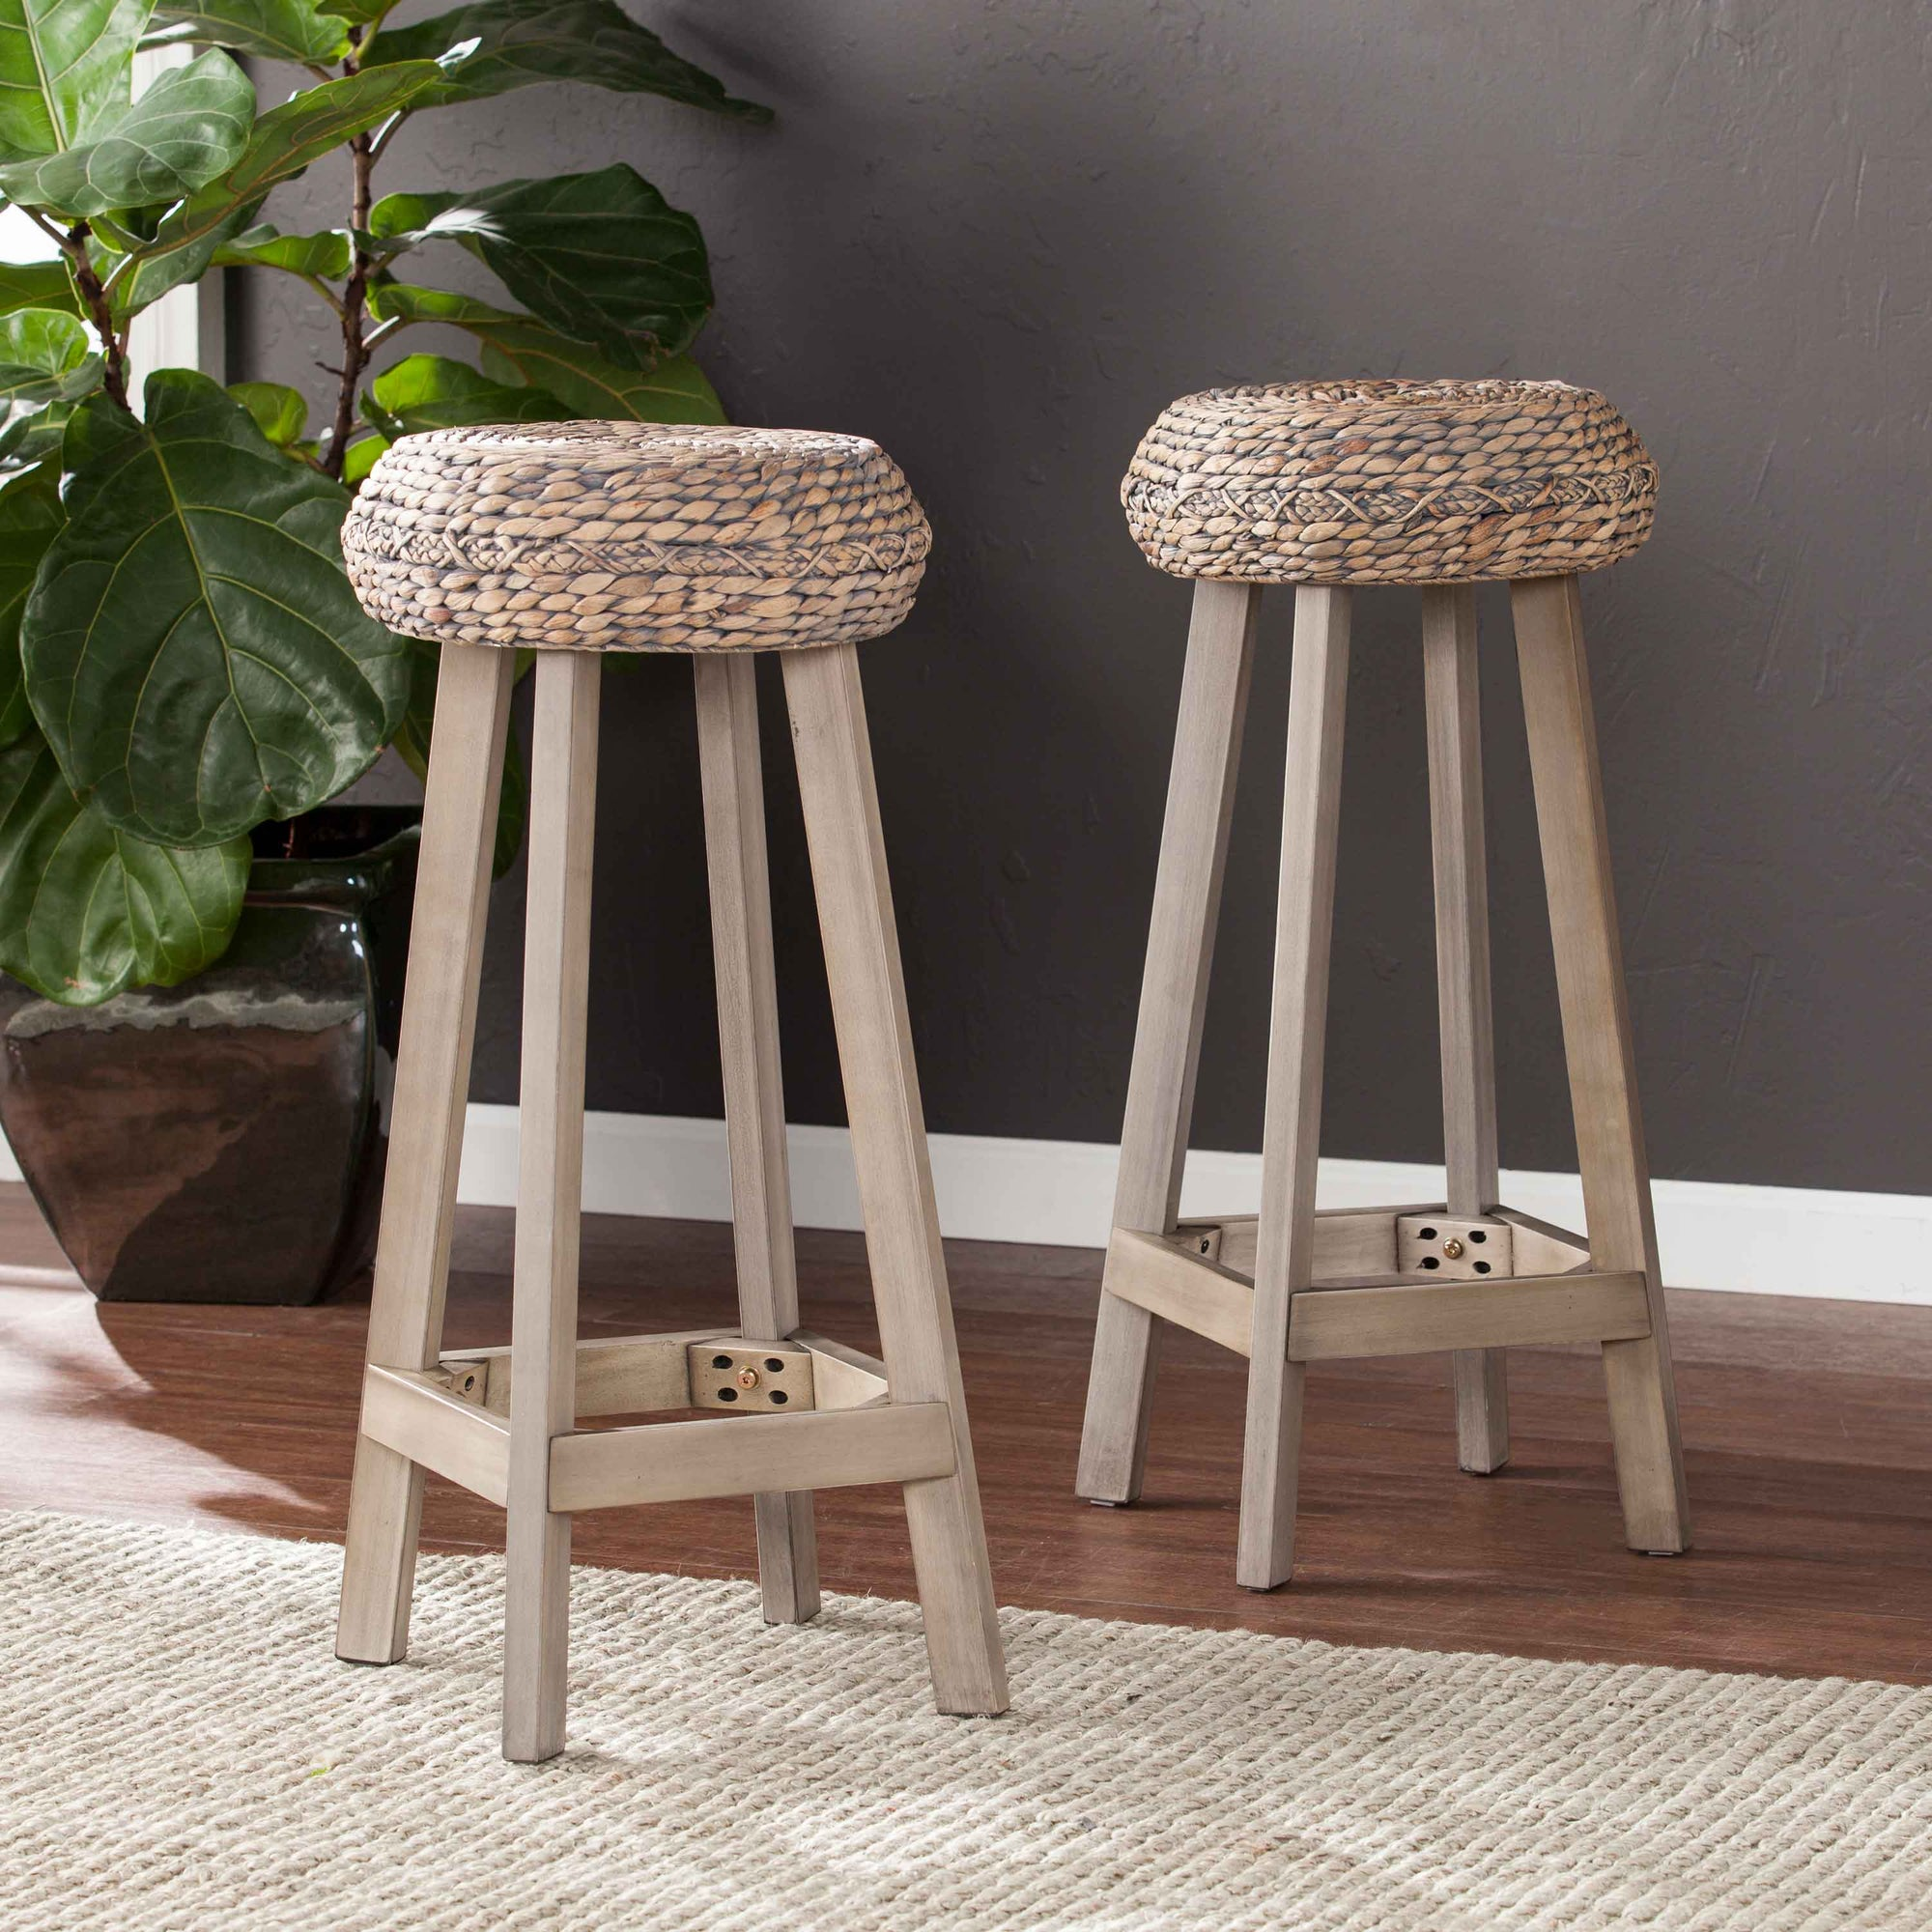 Rutina Round Backless Bar Stools 2PC Set